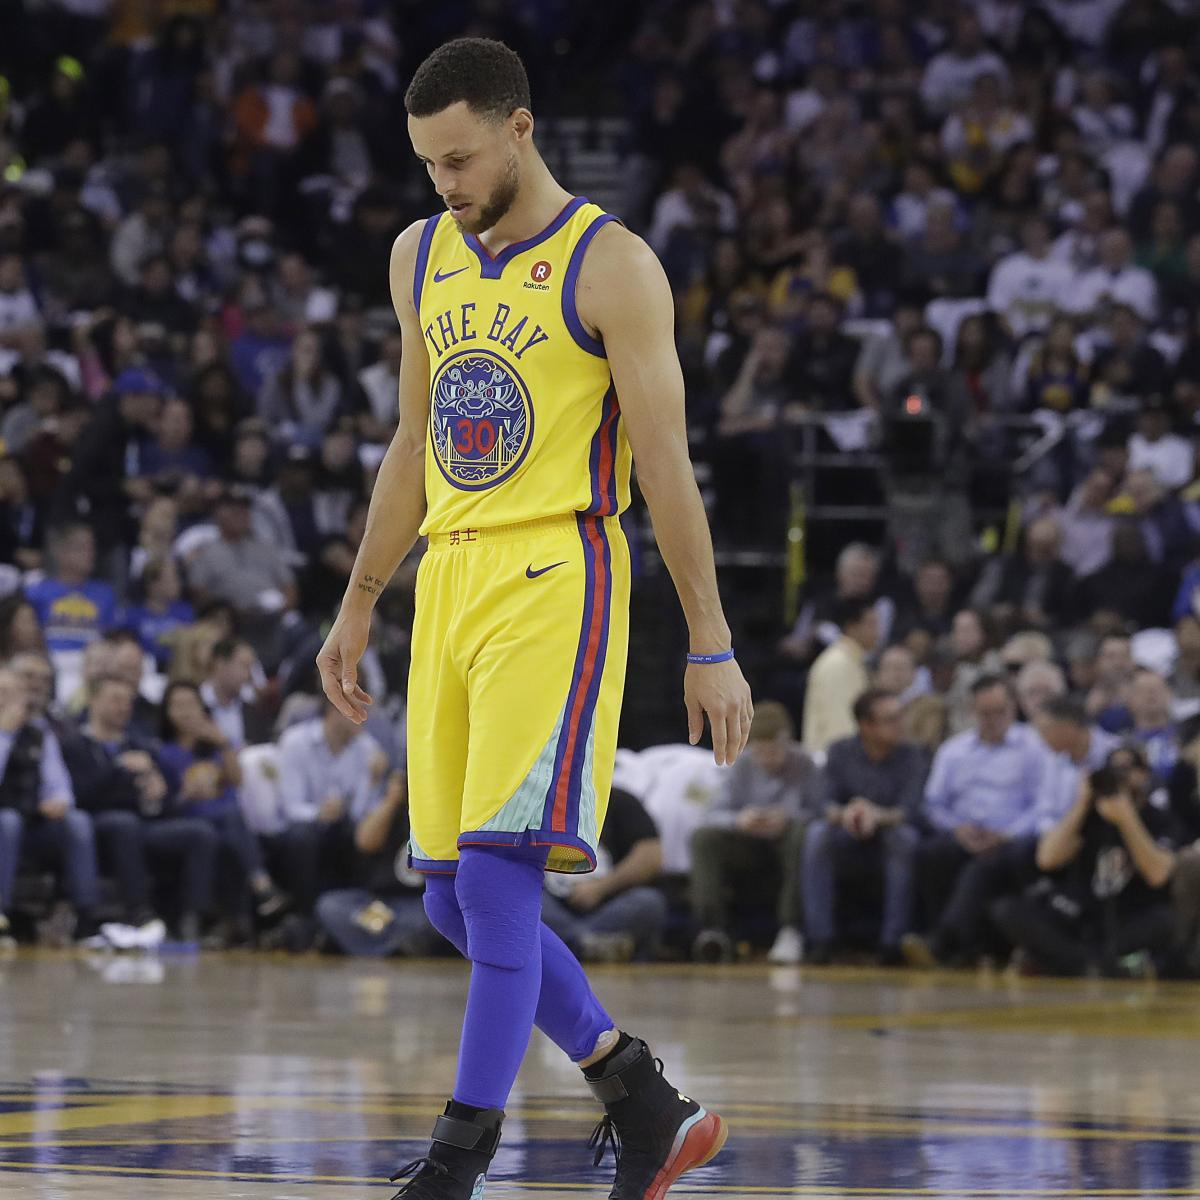 Portland Blazers Game: Stephen Curry To Sit Out Vs. Trail Blazers, Timberwolves